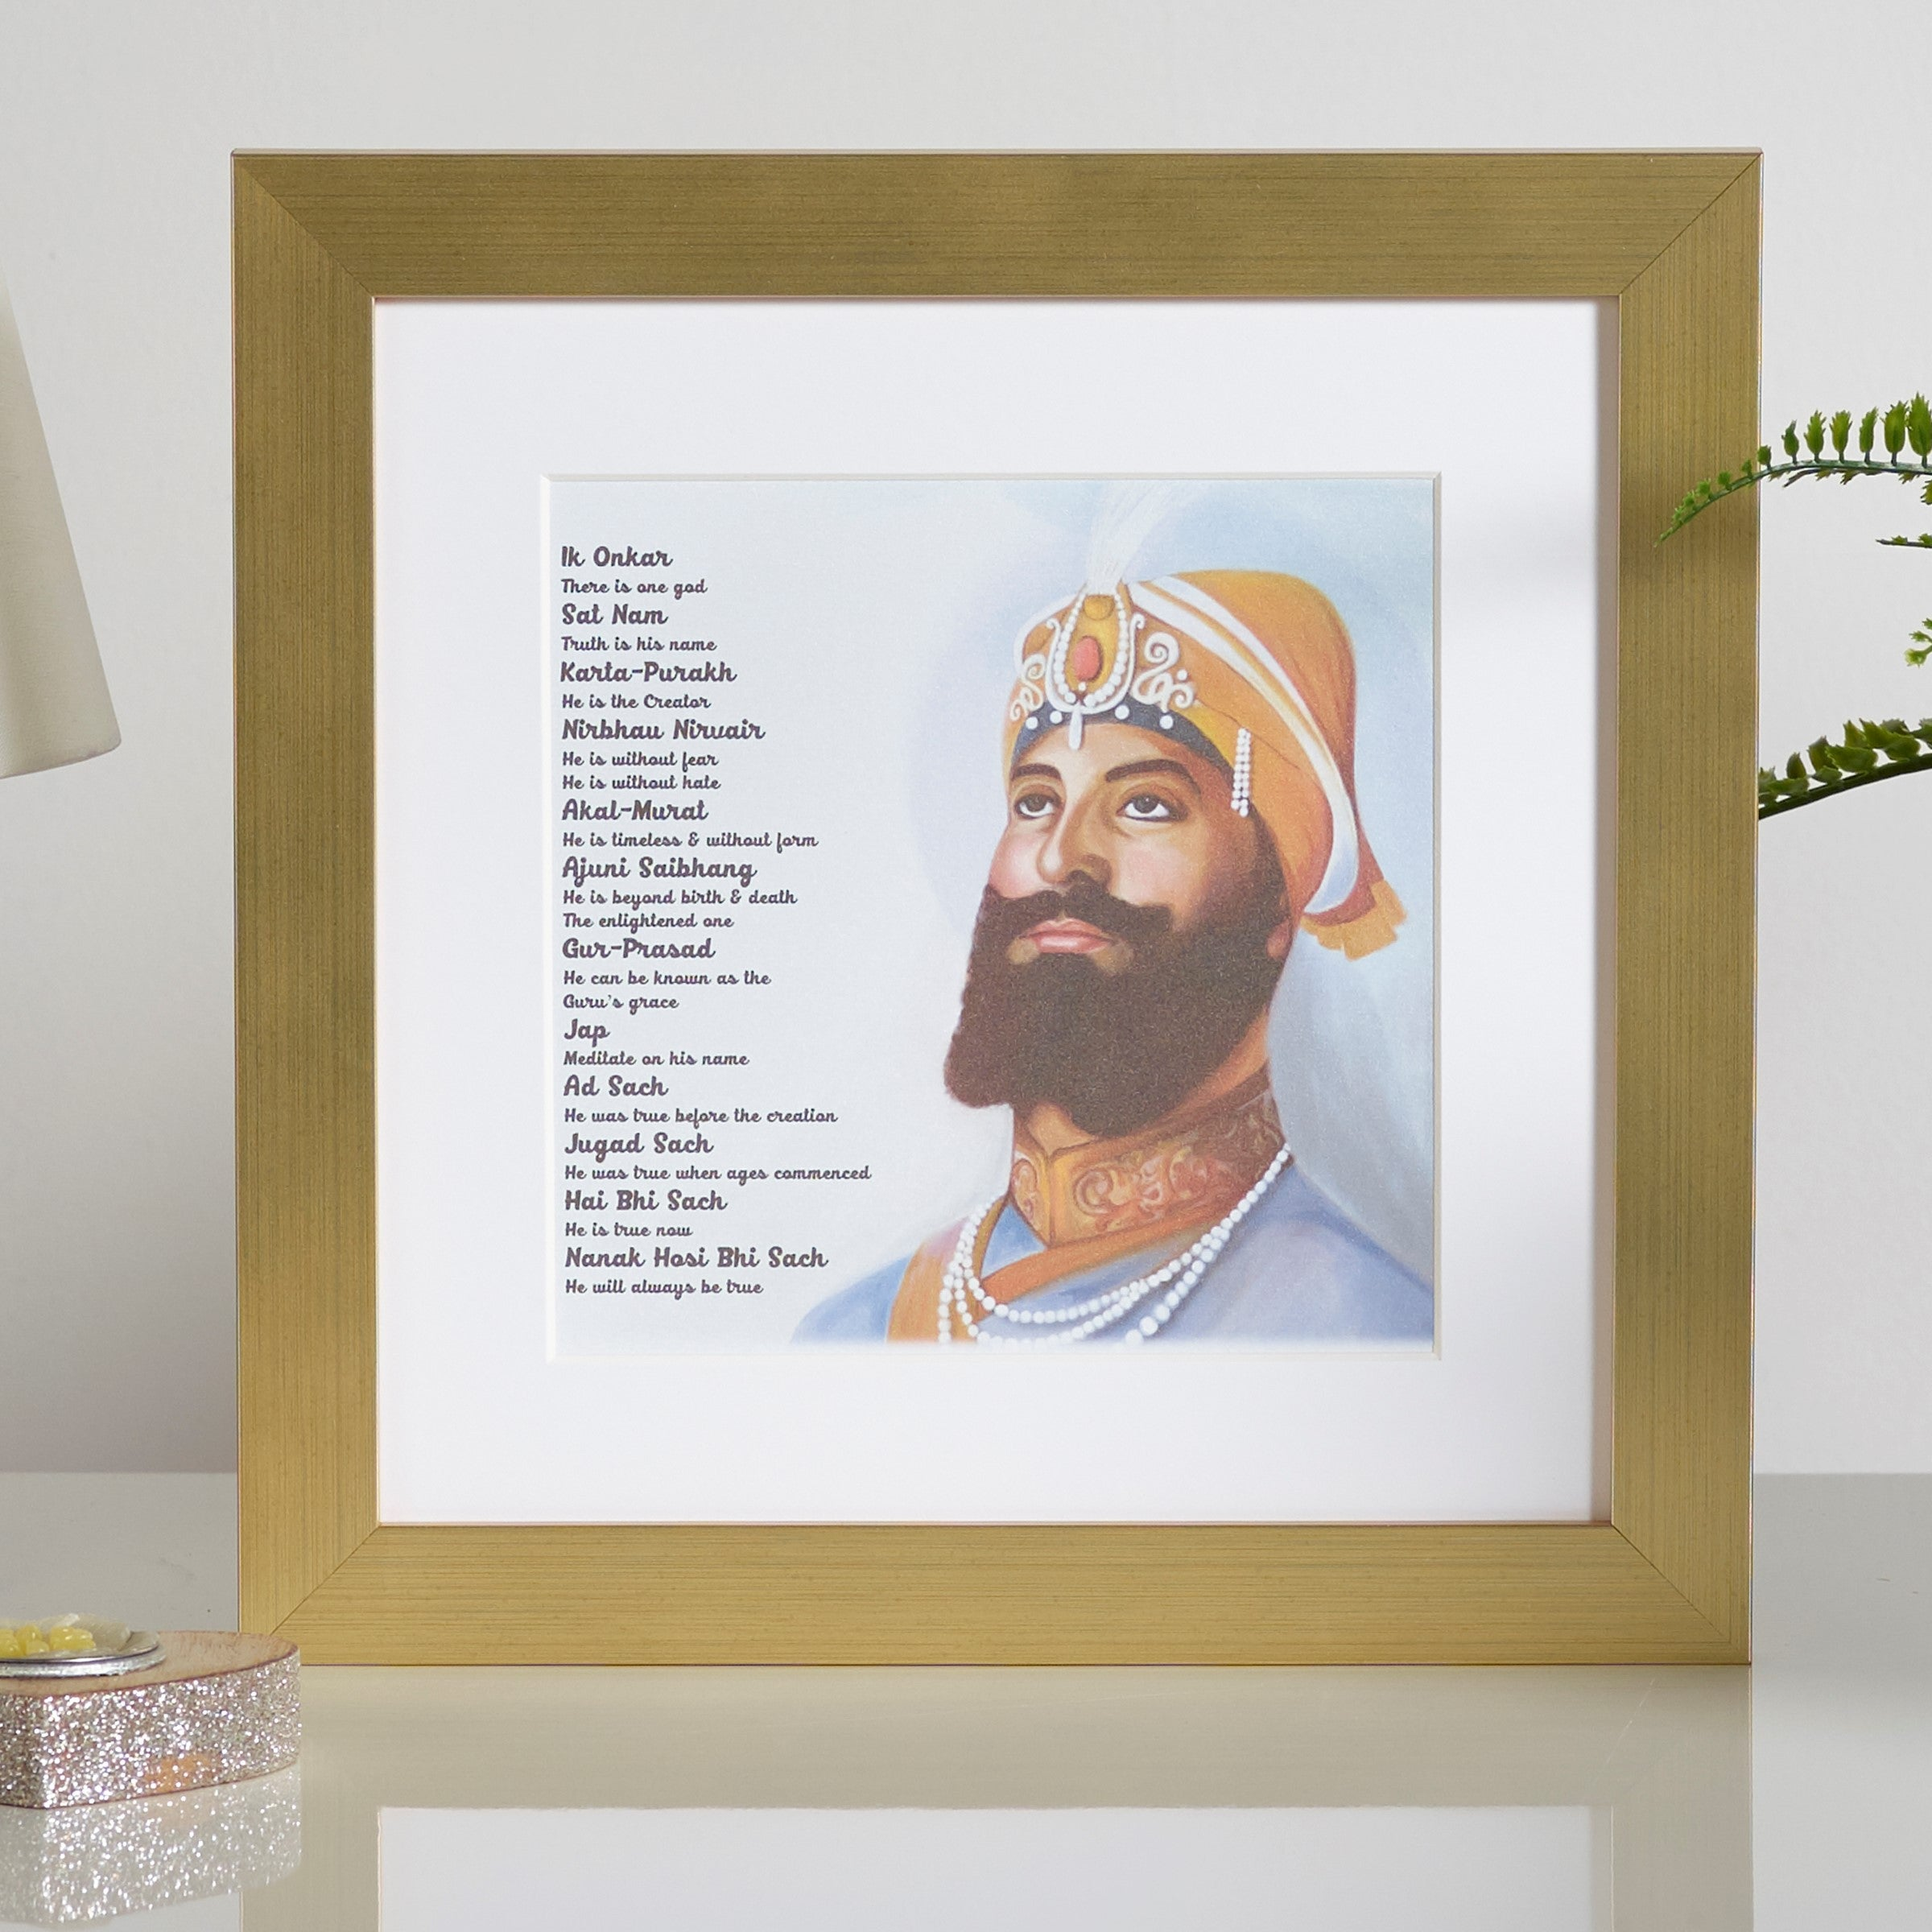 Guru Gobind Frame Including Mool Mantar in English With Translation